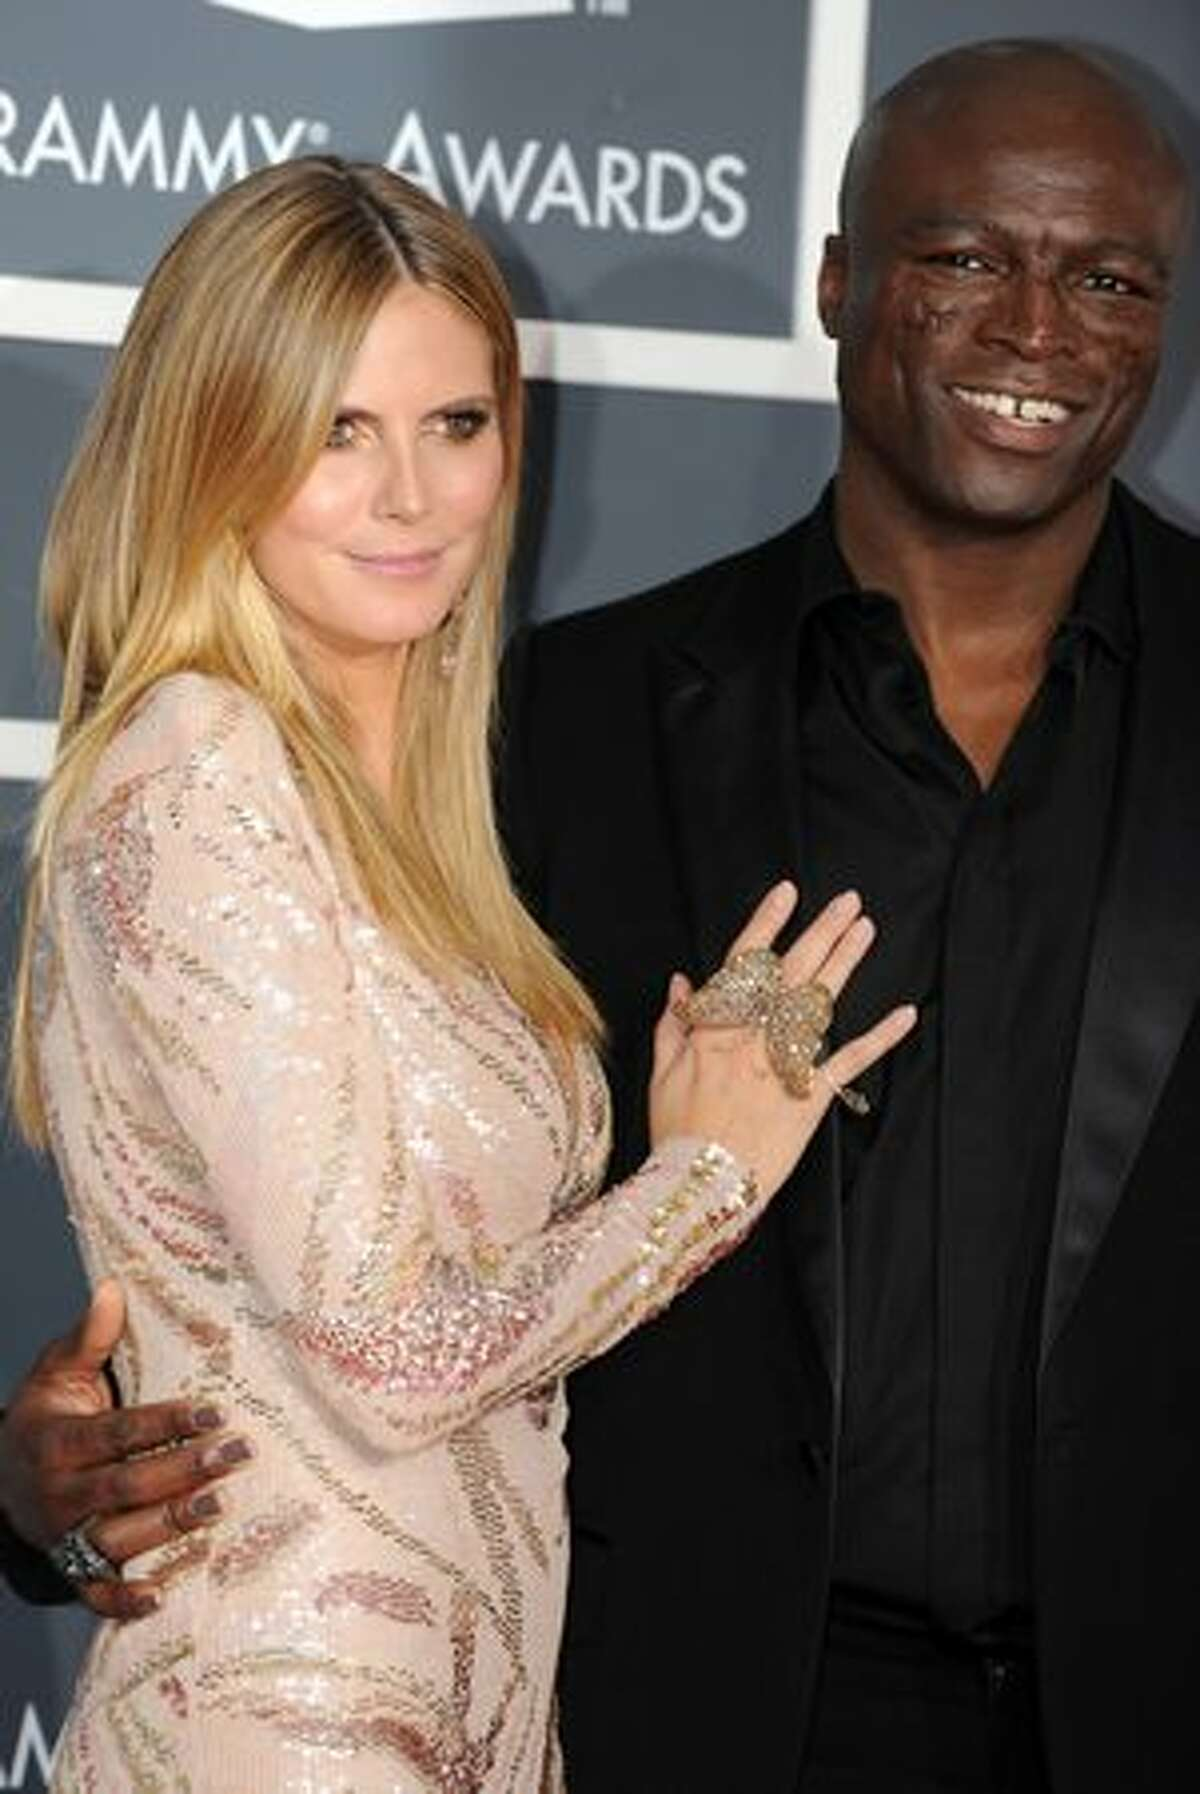 Musician Seal and his wife, top model Heidi Klum arrive on the red carpet at the 52nd Grammy Awards in Los Angeles, California on January 31.